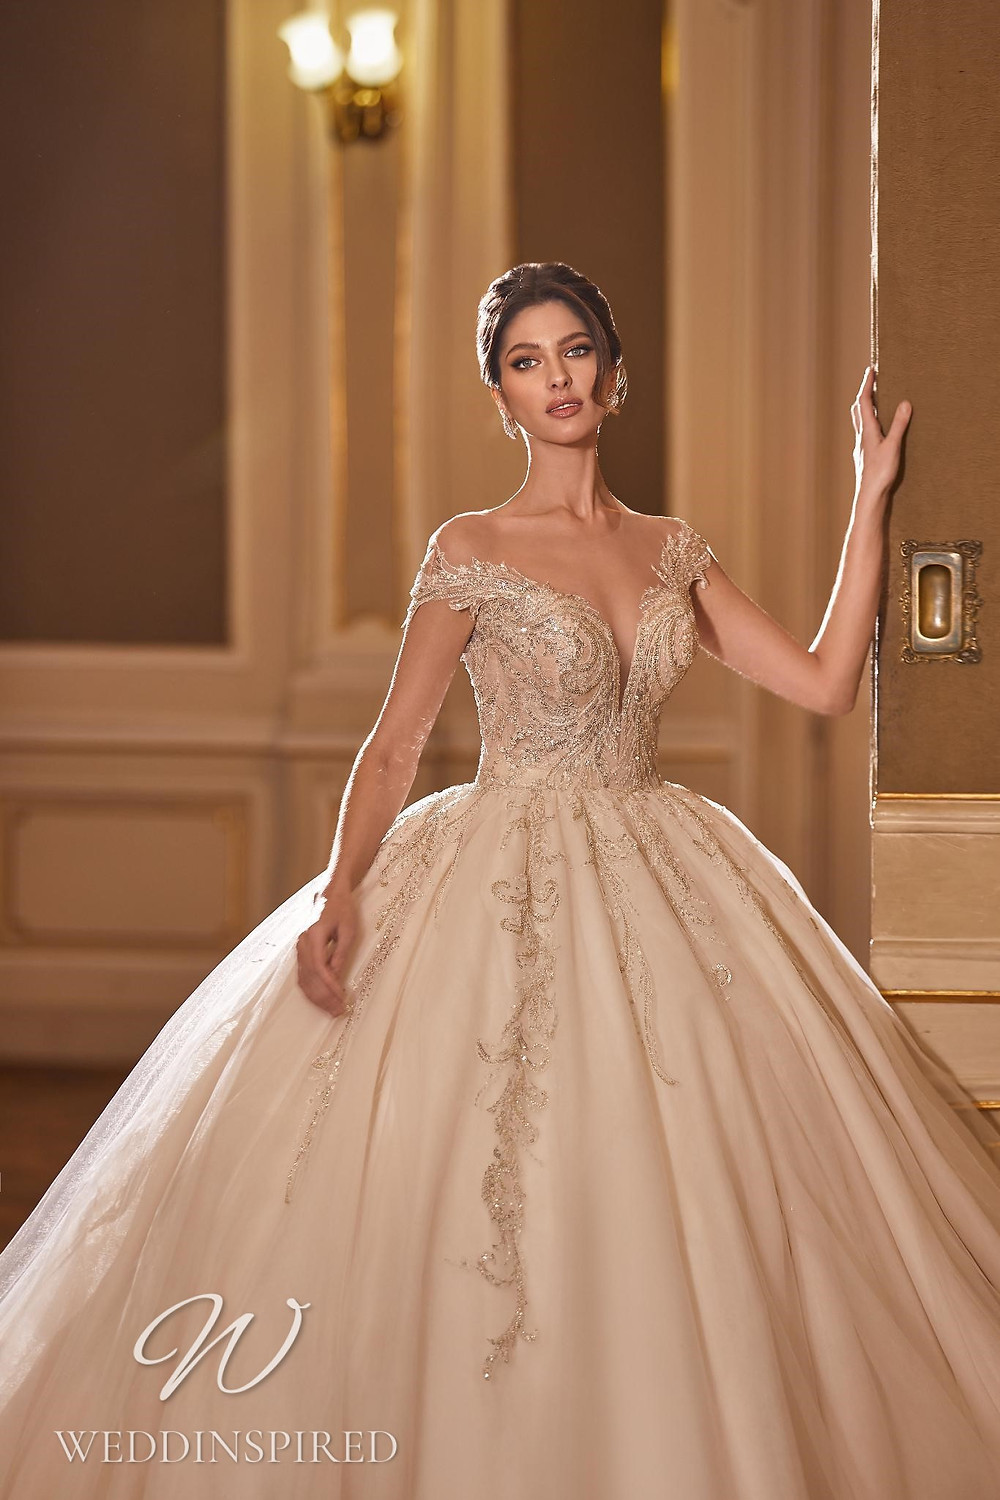 A Ricca Sposa 2022 blush off the shoulder tulle and lace princess wedding dress